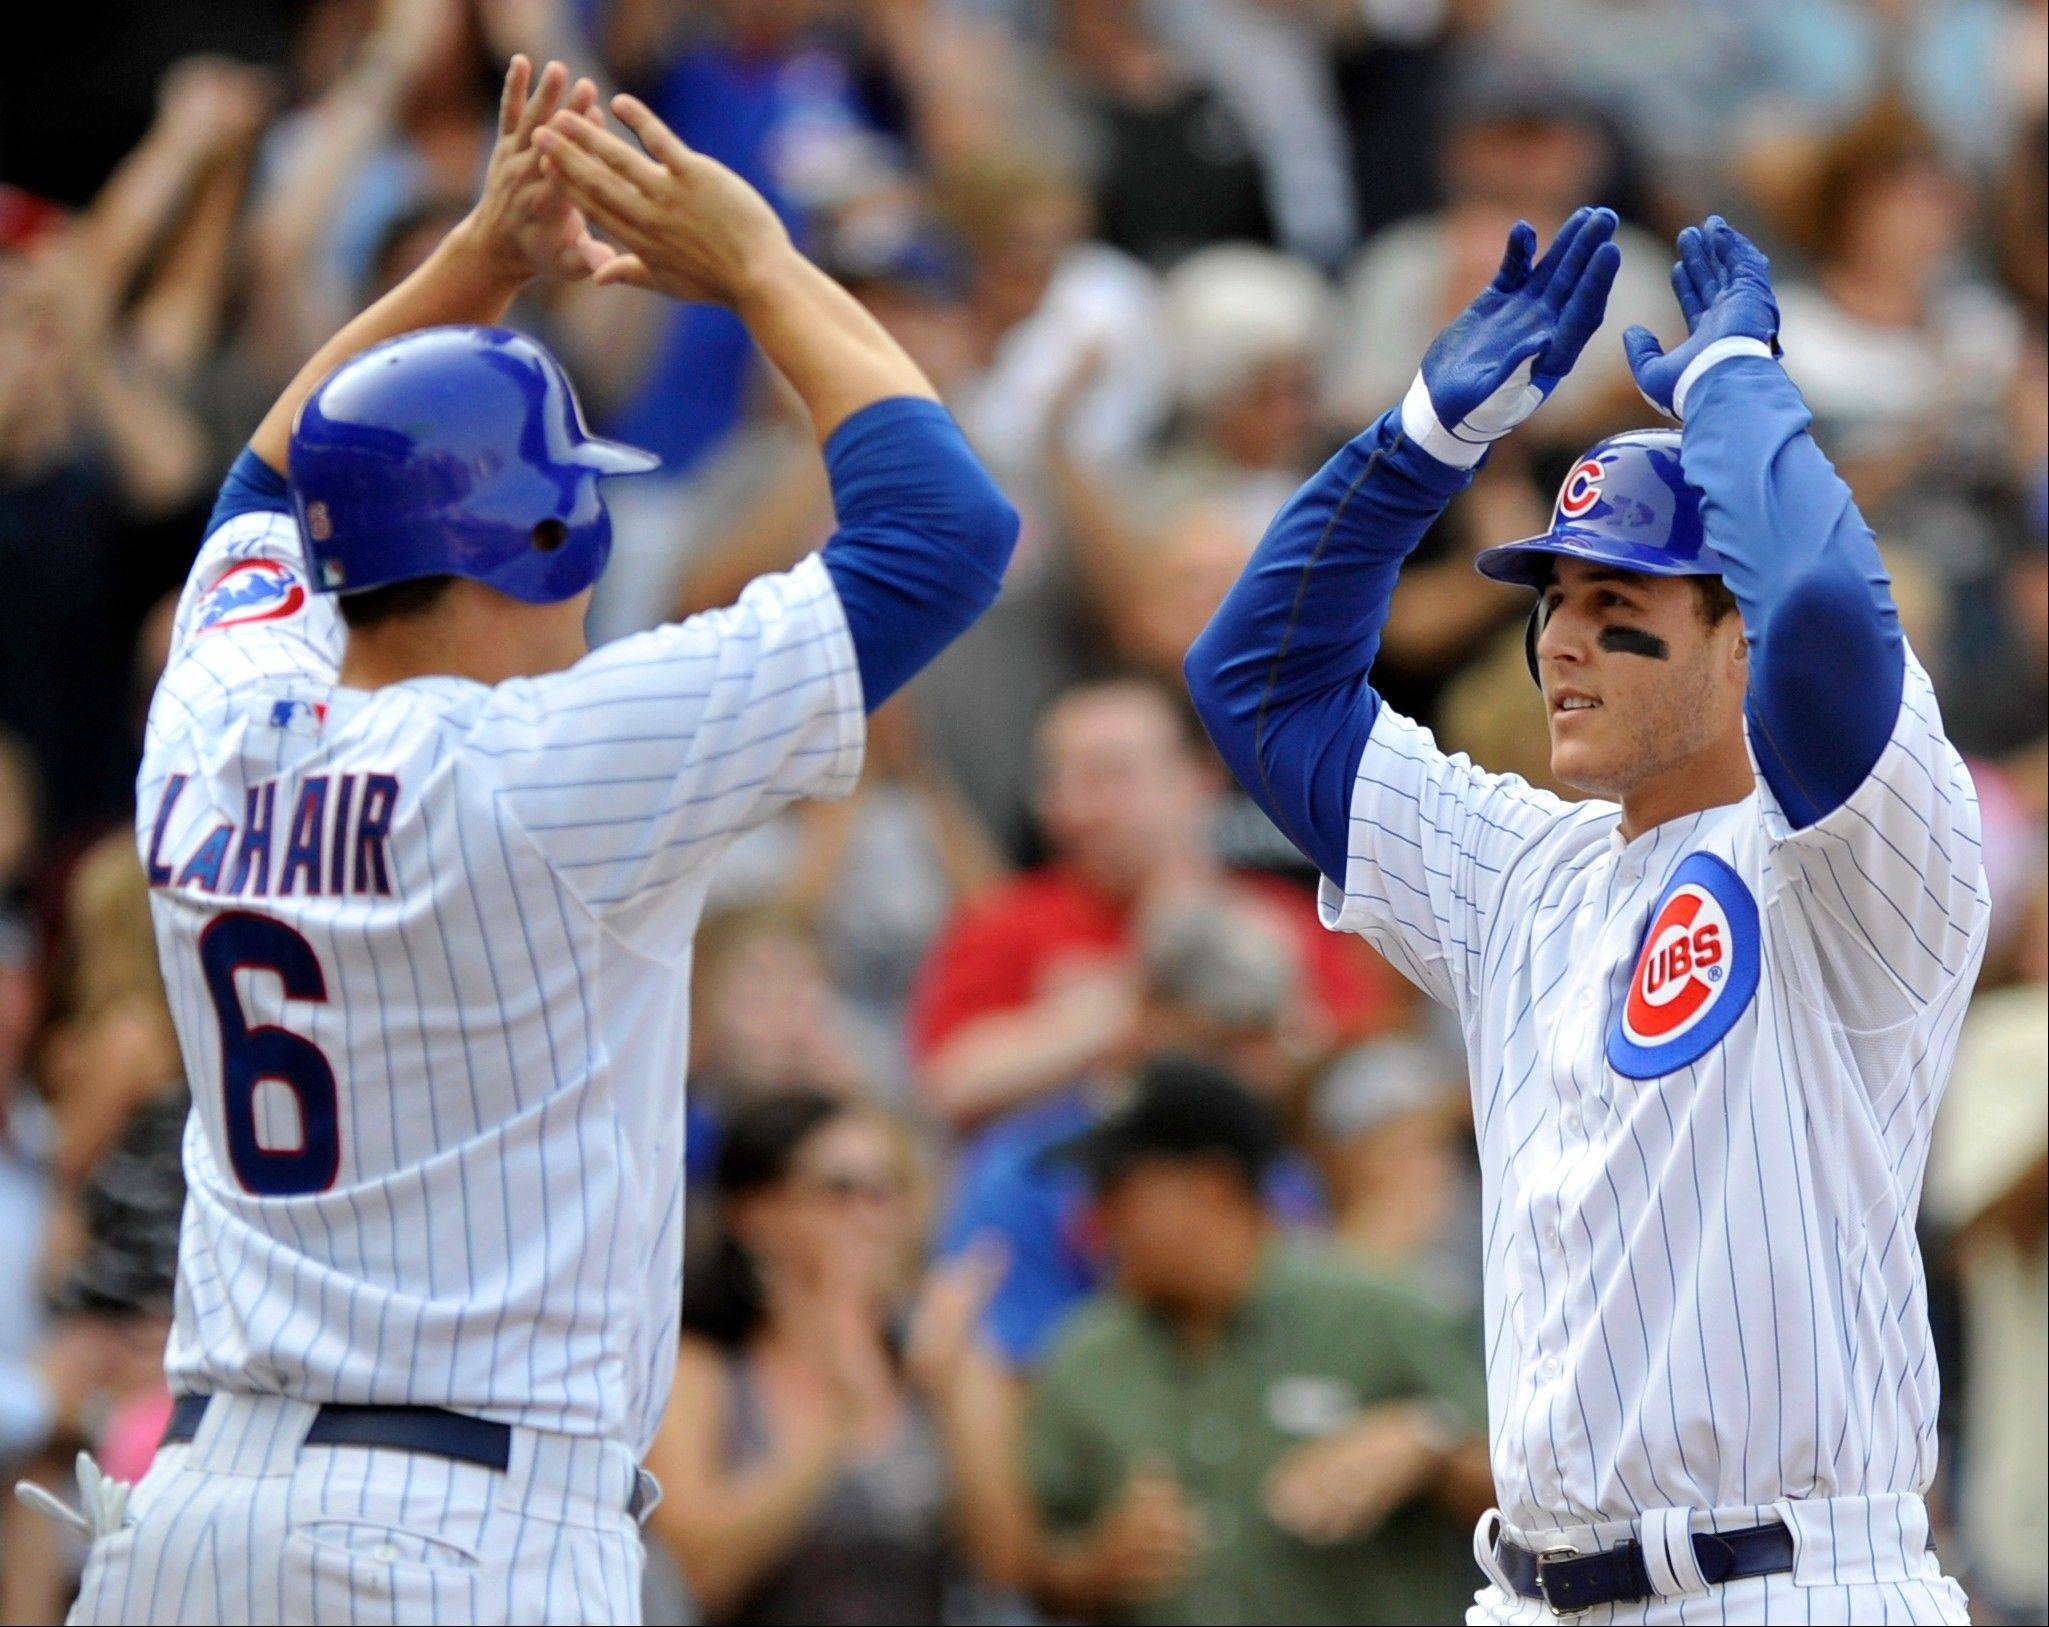 The Cubs' Anthony Rizzo celebrates with Bryan LaHair at home plate Sunday after hitting his first career grand slam.